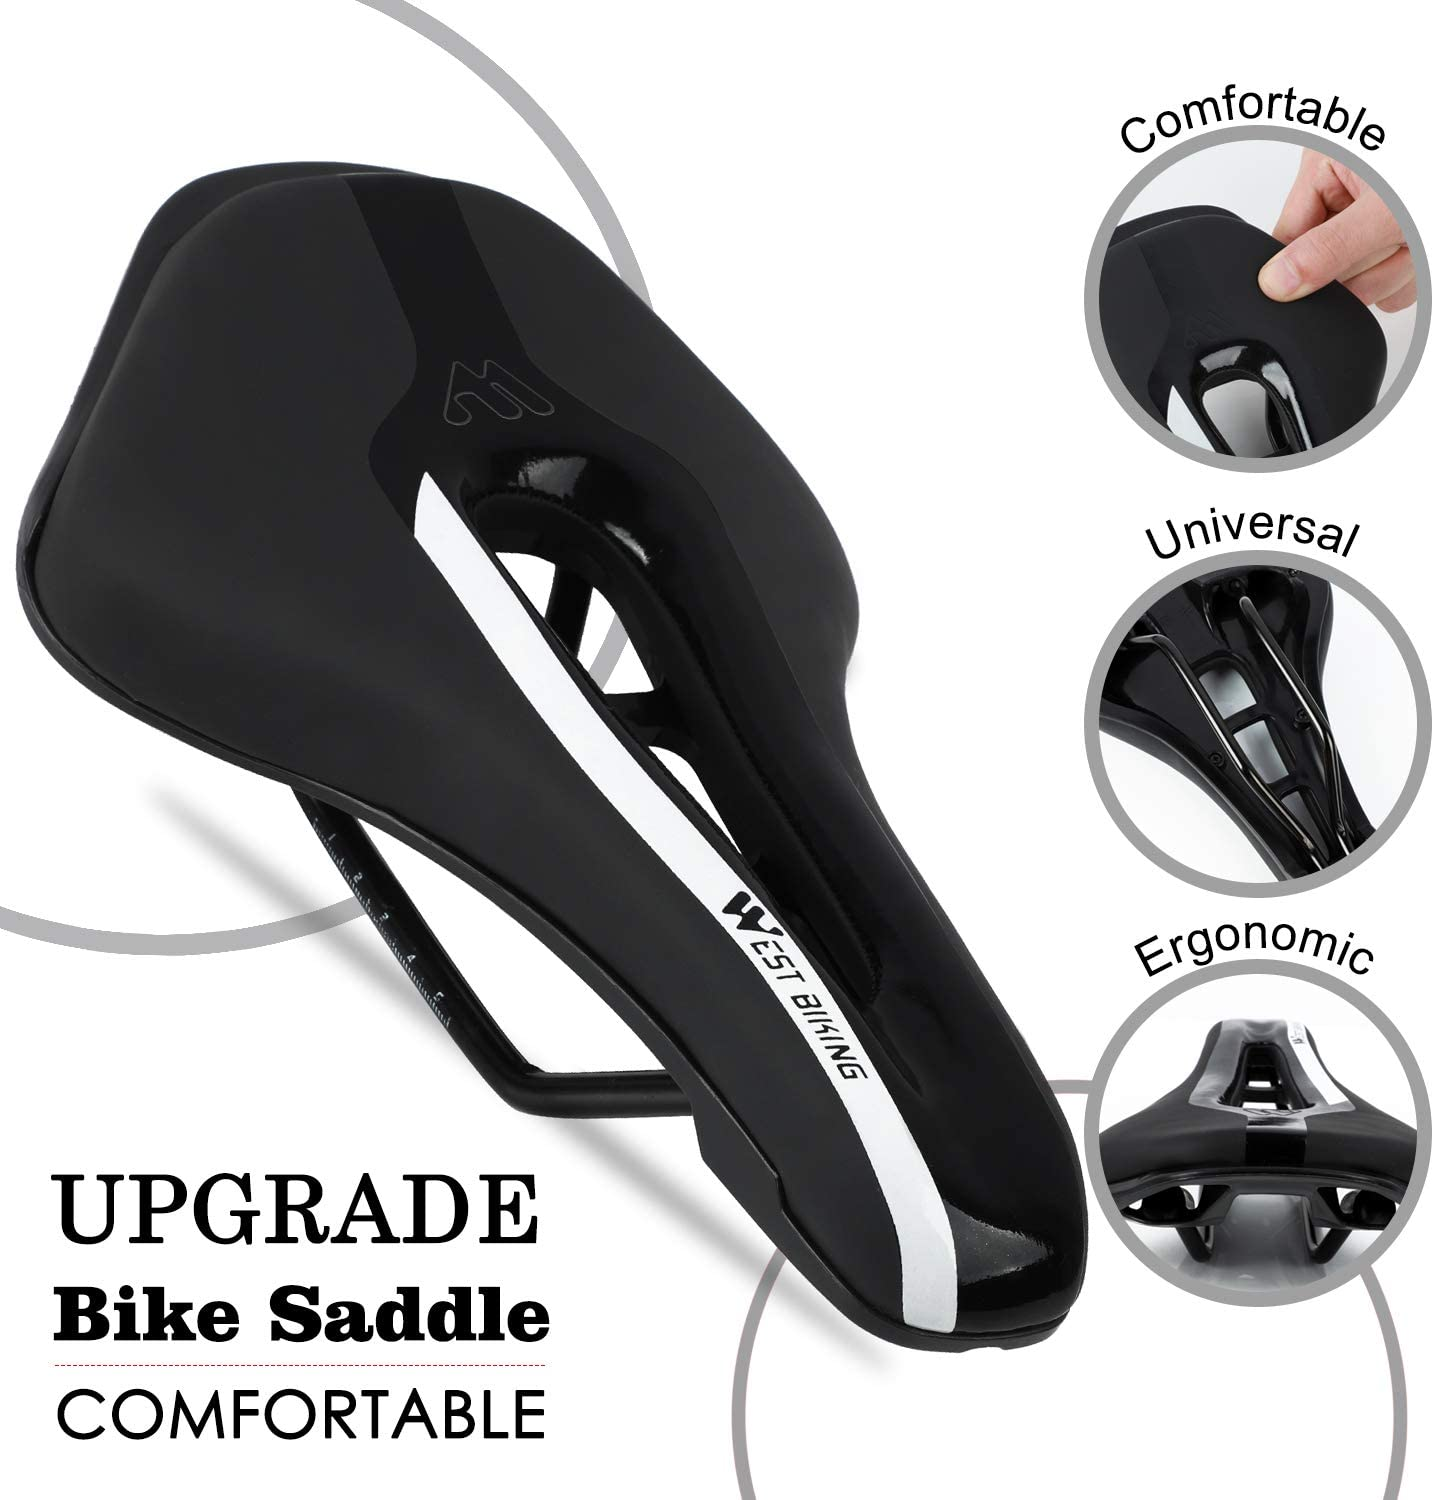 Non-Slip Extra Comfort Water-Resistant Soft Bicycle Cushion with Breathable Design for Men Women Road BMX Cycling Seat West Biking Ultralight Bike Saddle